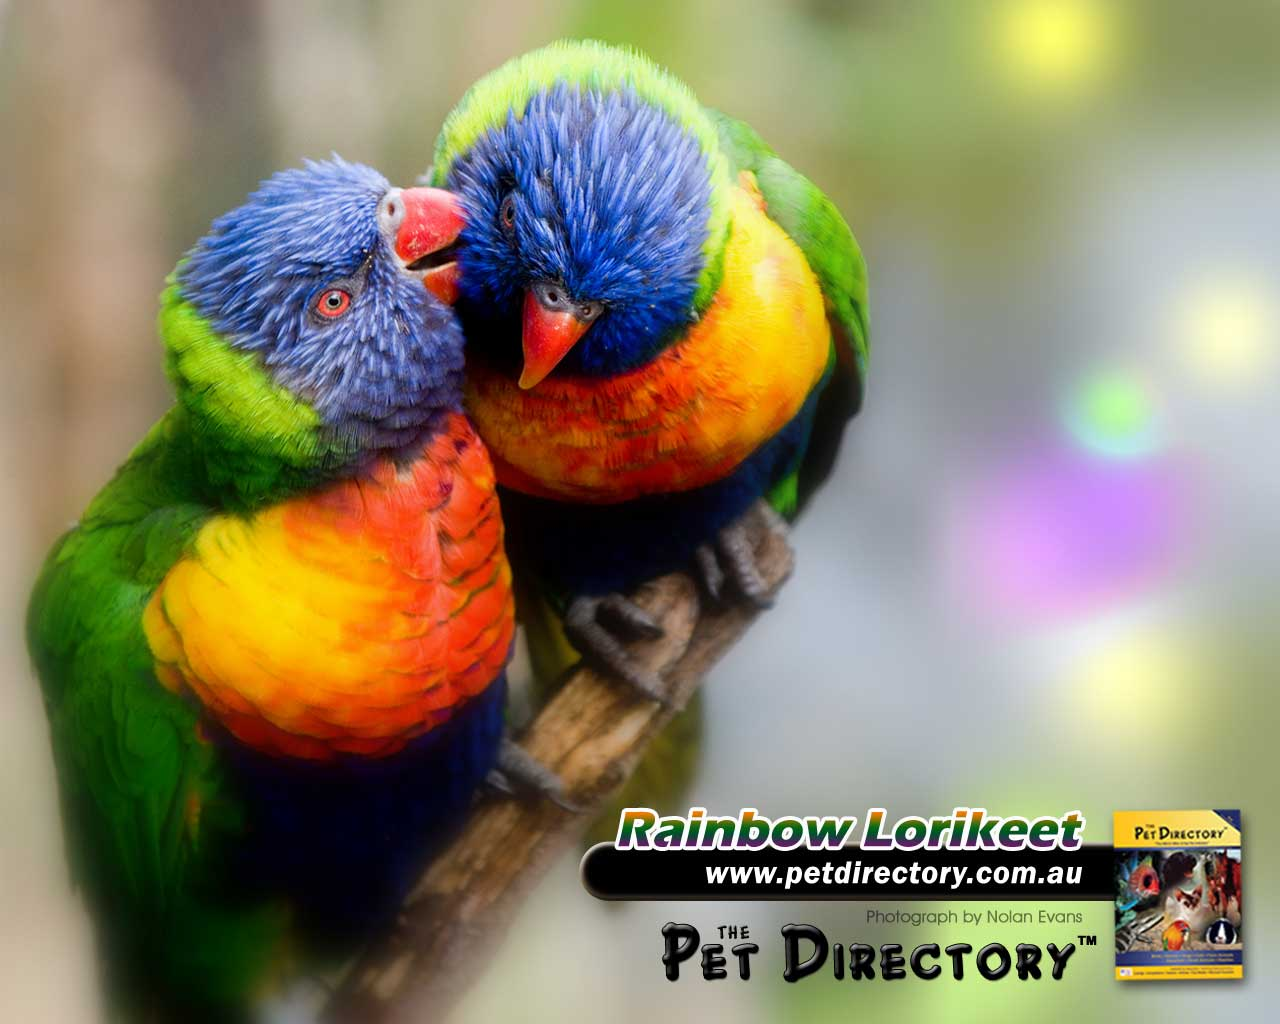 the pet directory australia: world's largest online pet directory